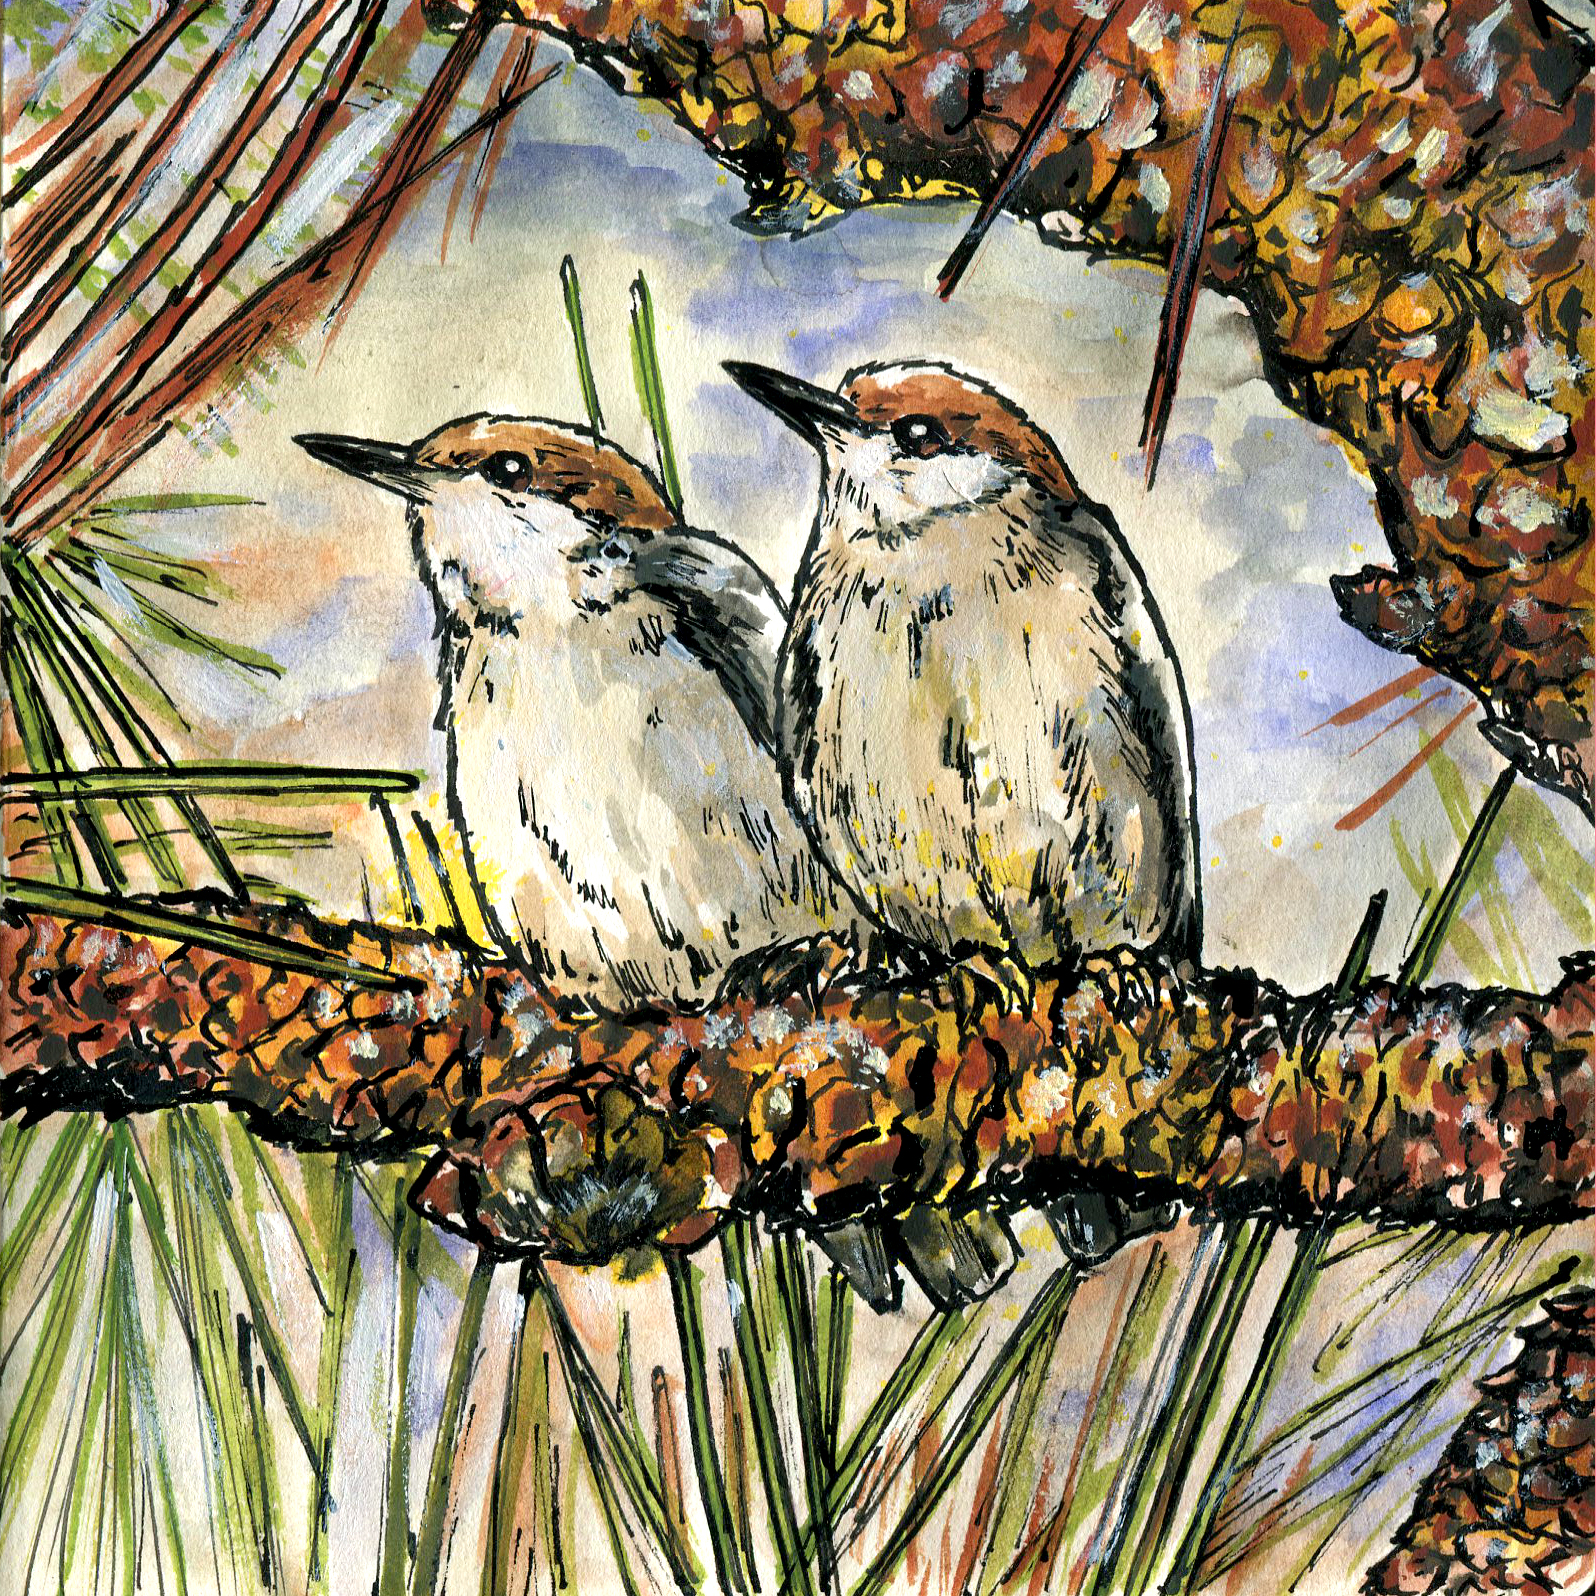 256. Brown-headed Nuthatch